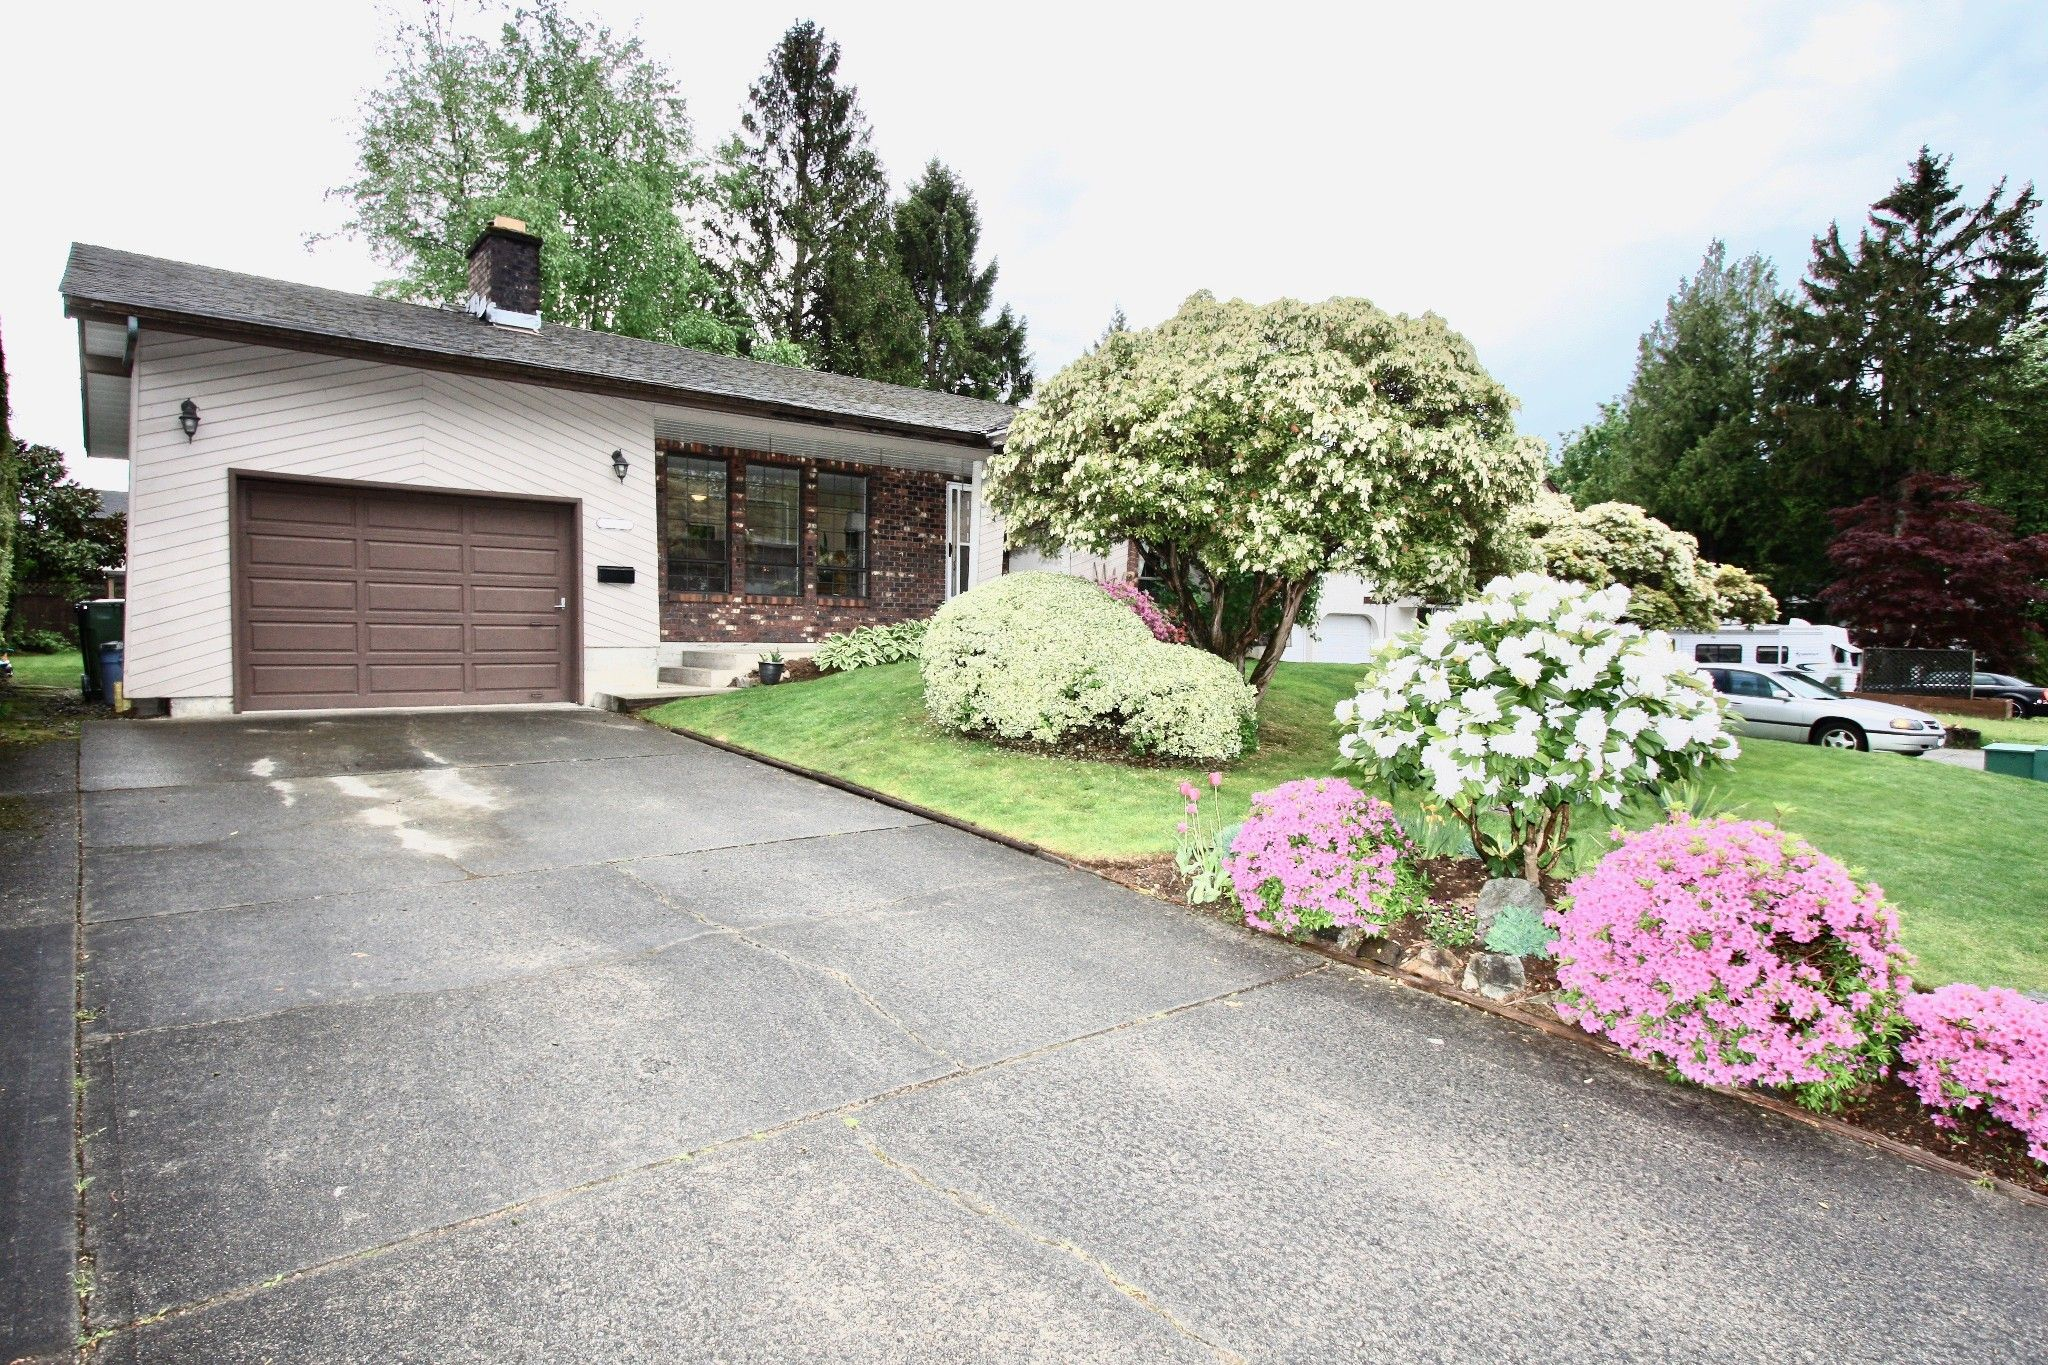 Main Photo: 2421 Aladdin Crescent in Abbotsford: Abbotsford East House for sale : MLS®# R2577565